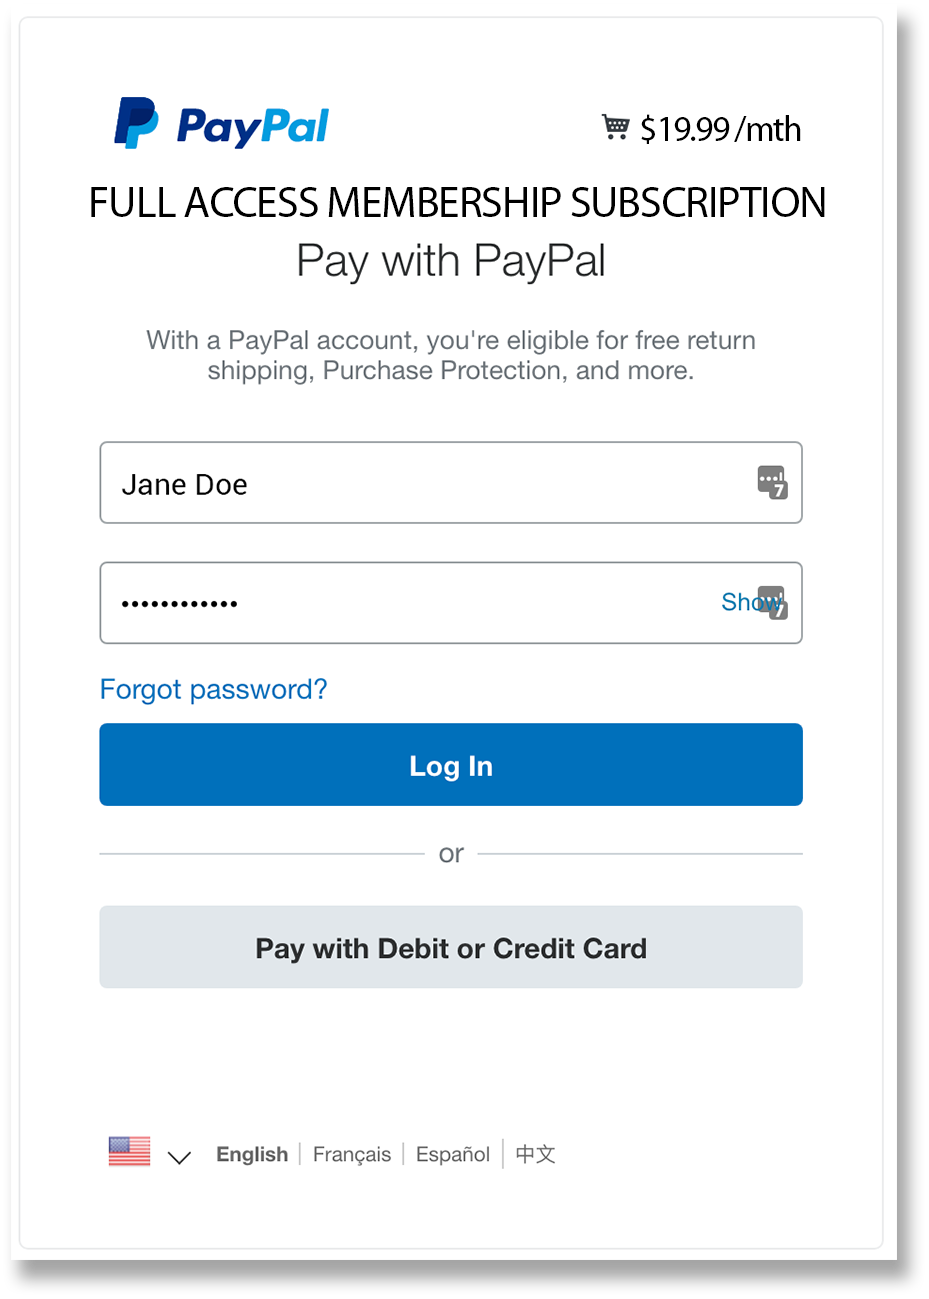 payment_Full_Access